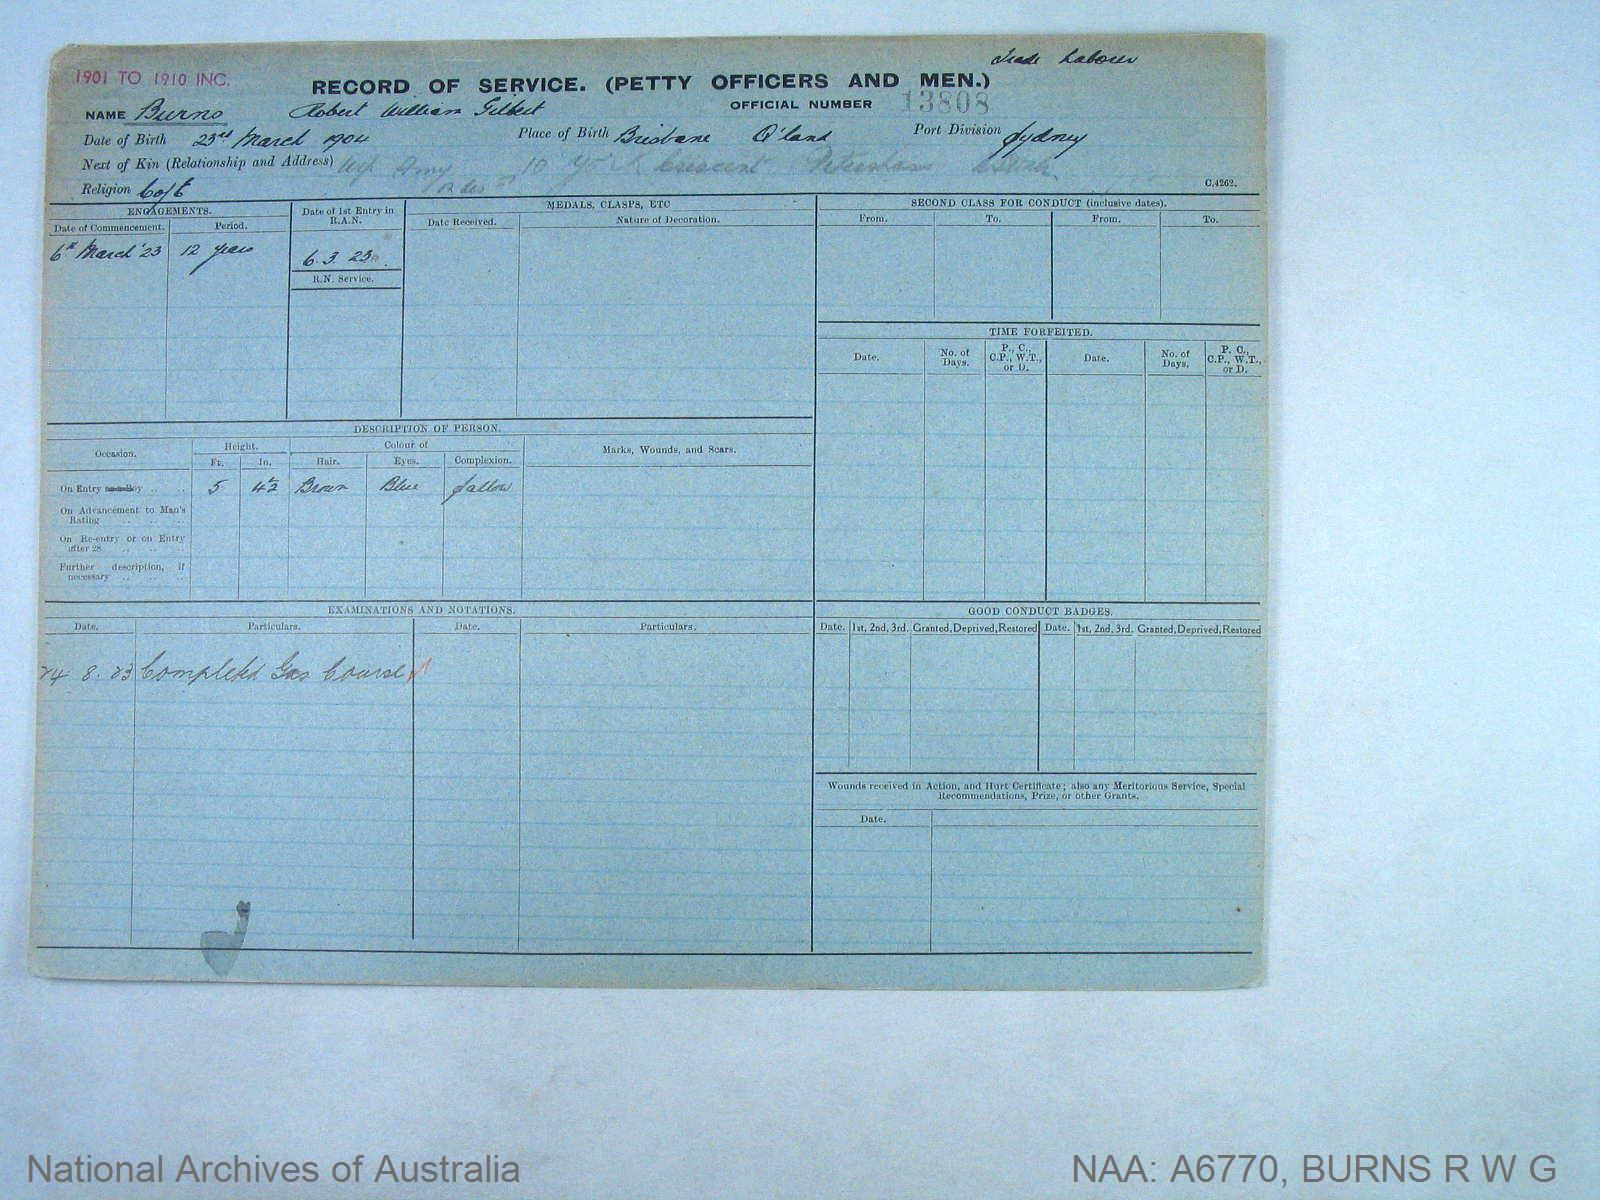 BURNS ROBERT WILLIAM GILBERT : Service Number - 13808 : Date of birth - 23 Mar 1904 : Place of birth - BRISBANE QLD : Place of enlistment - SYDNEY : Next of Kin - BURNS AMY